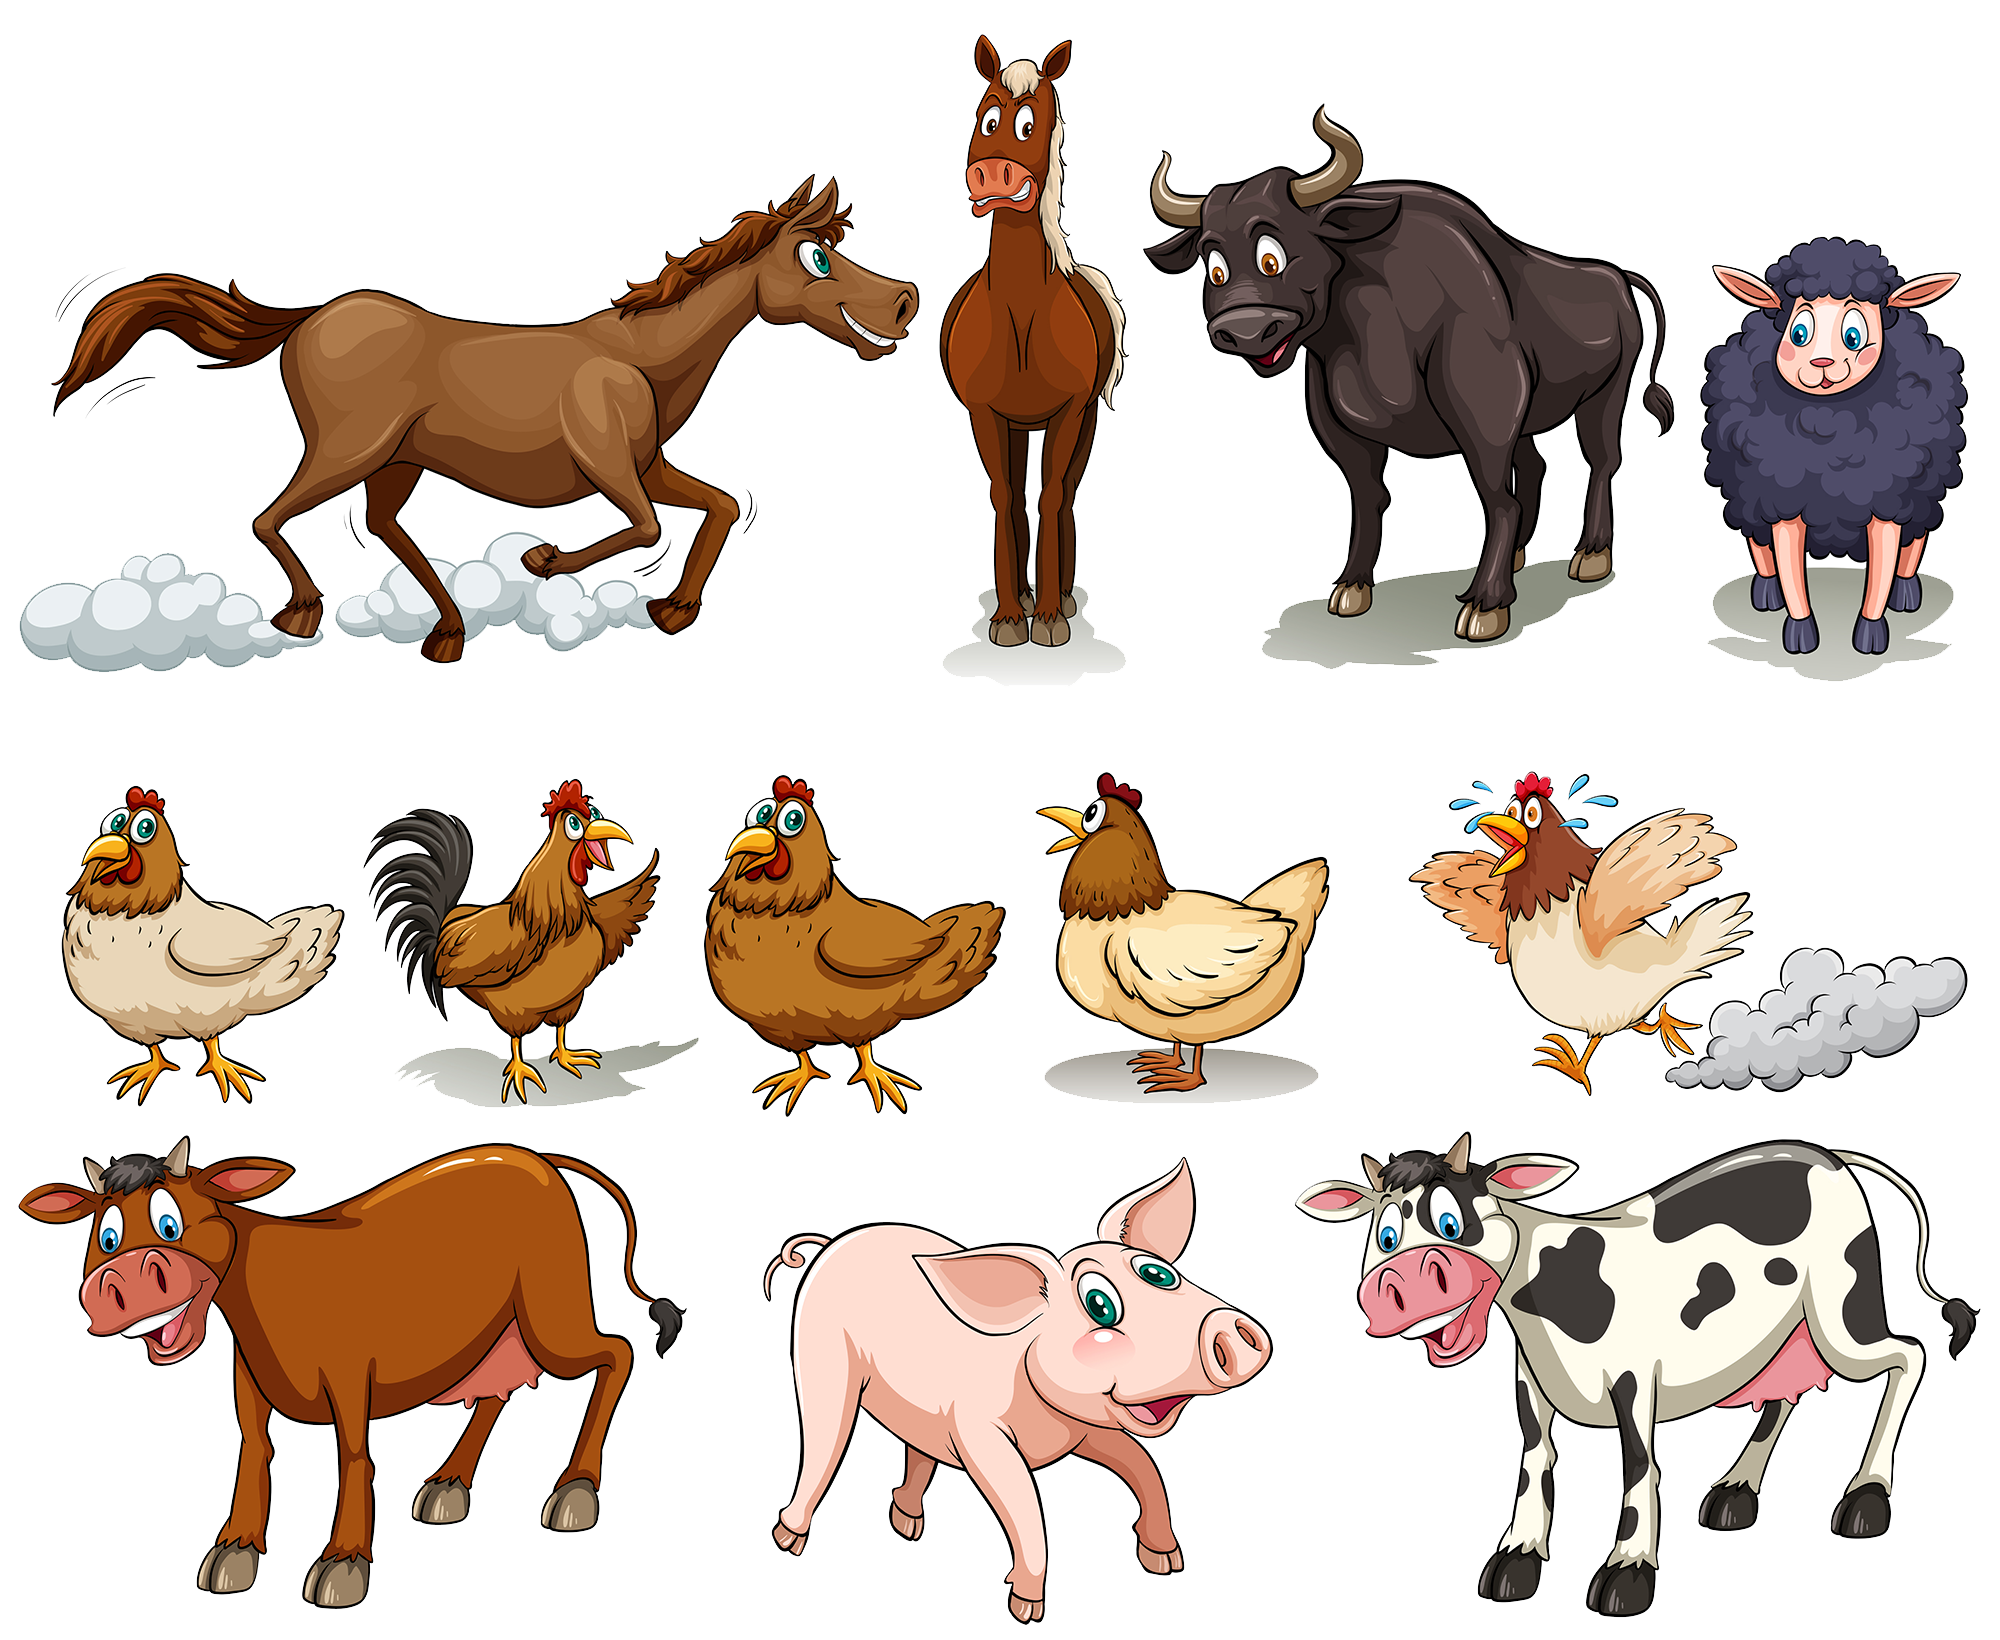 Cattle chicken sheep pig. Clipart horse domestic animal